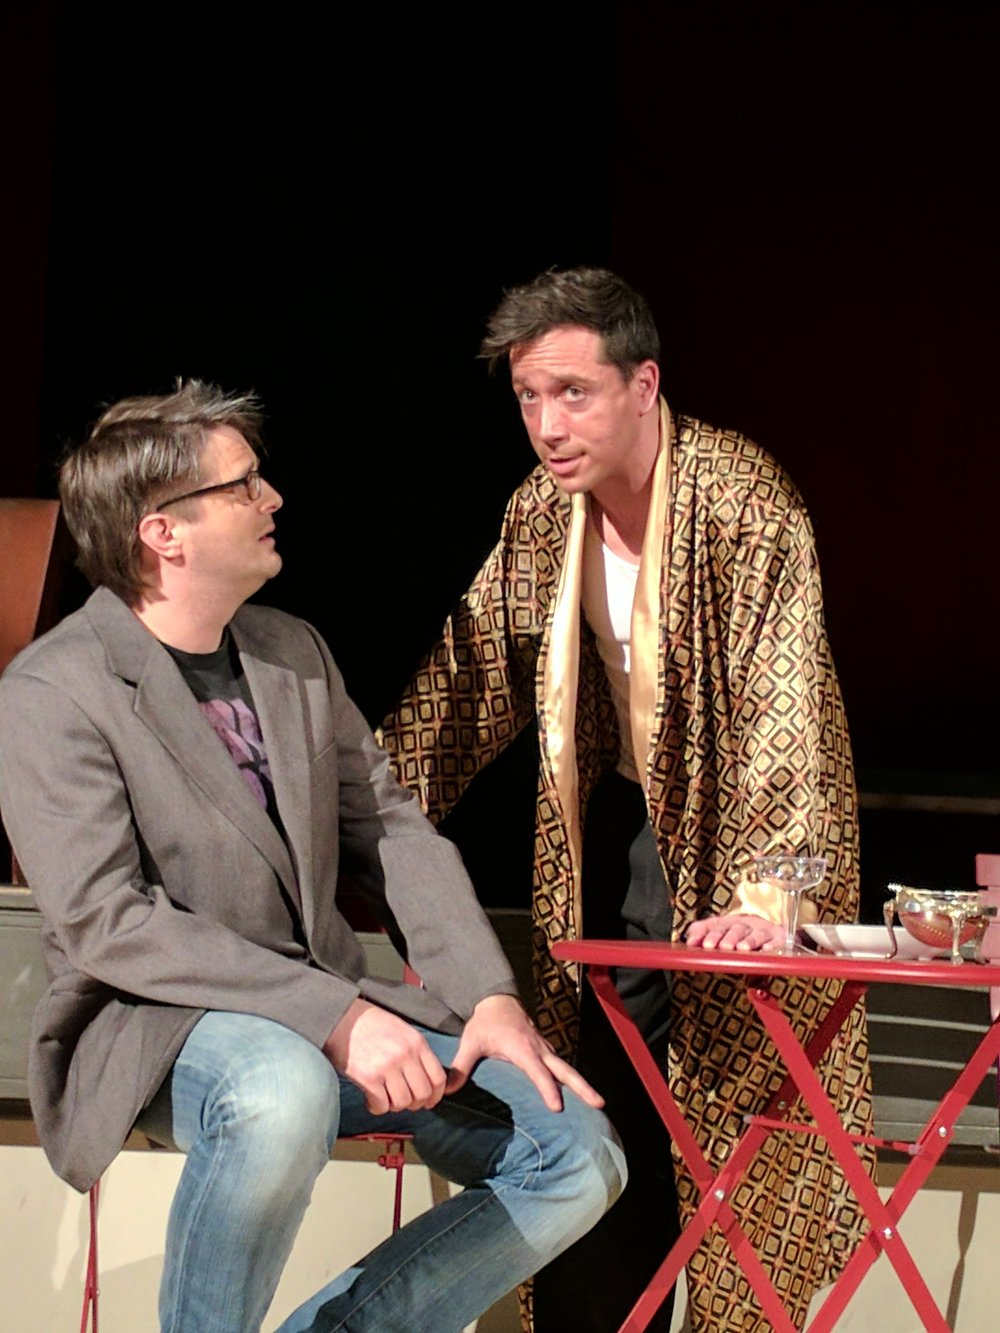 Isaac Newberry (L) as Alan and Ian LaChance (R) as Dorian